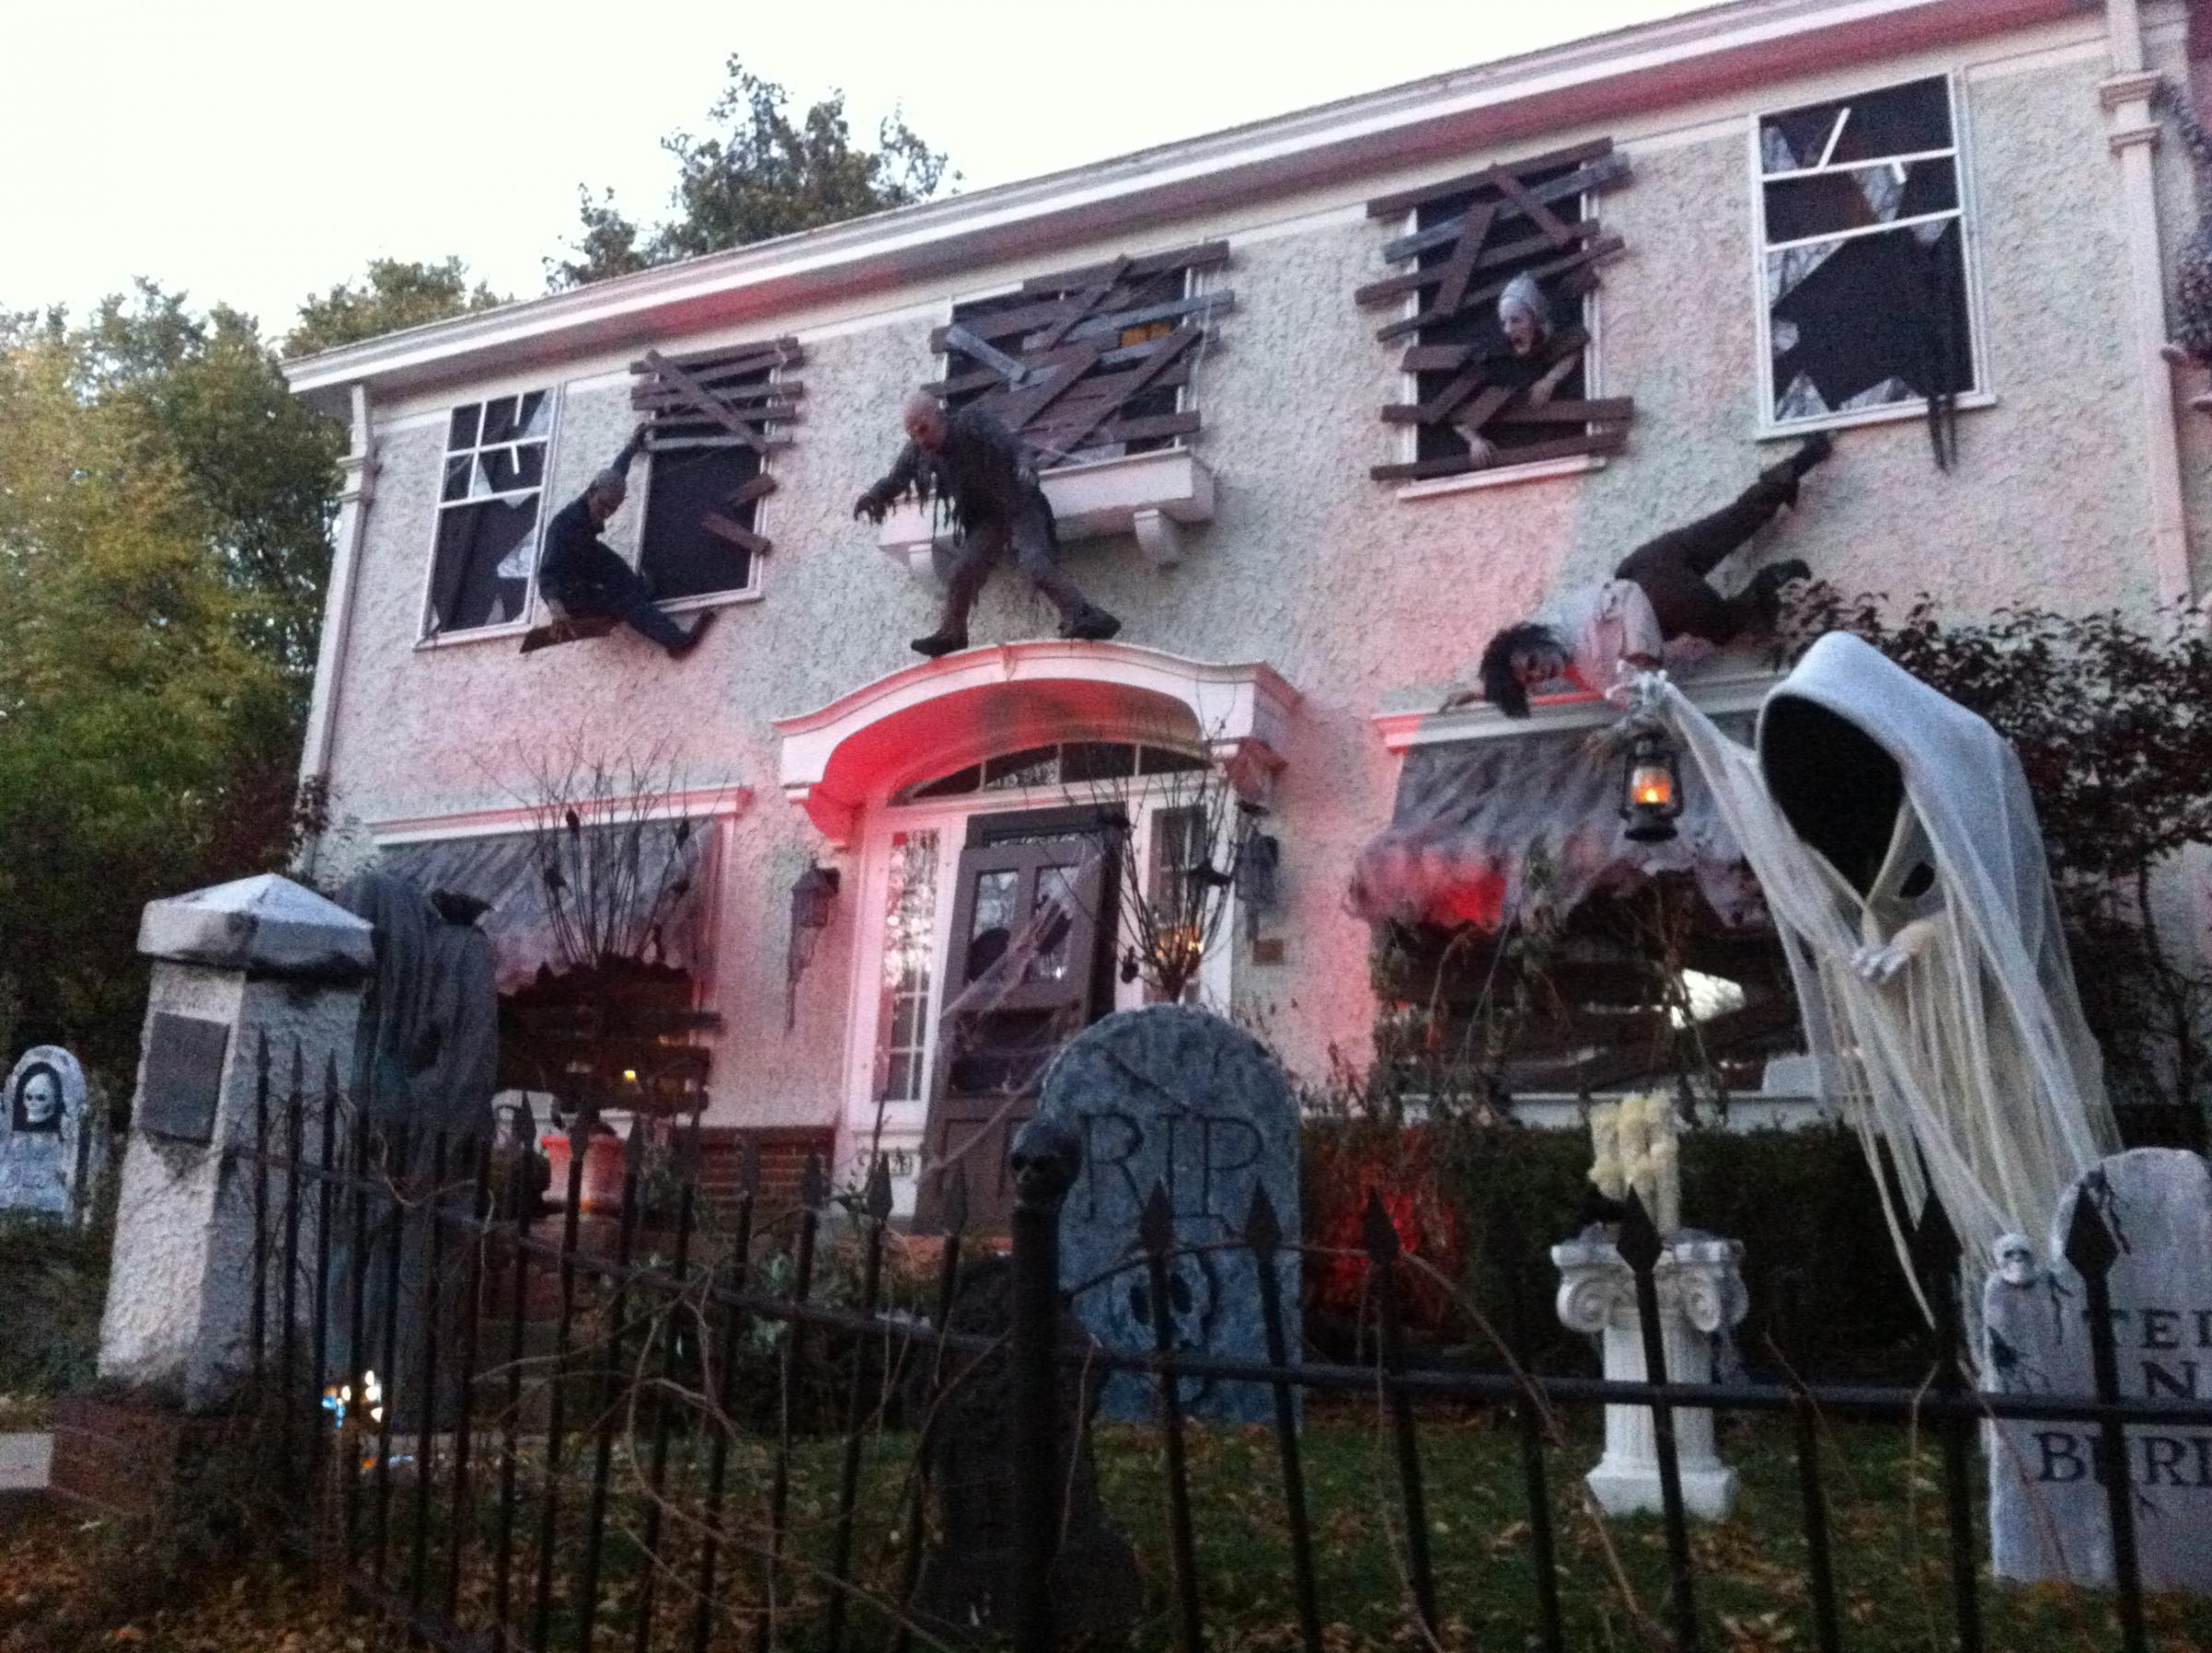 kyle chen and his family go all out when it comes to decorating their washington highlands home for halloween